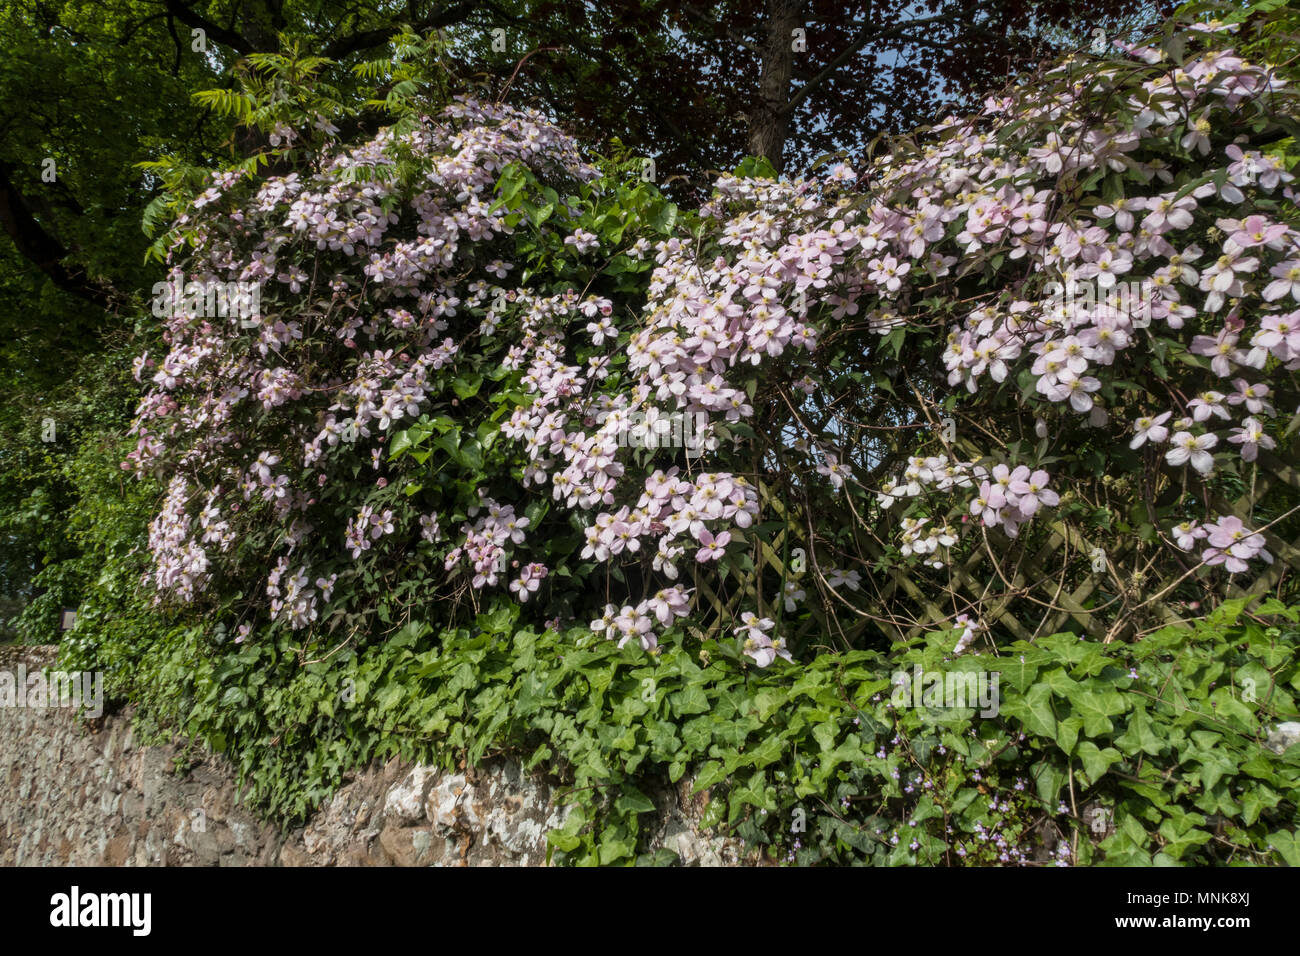 Clematis Montans Rubens in full flower overhanging a stone garden wall - Stock Image